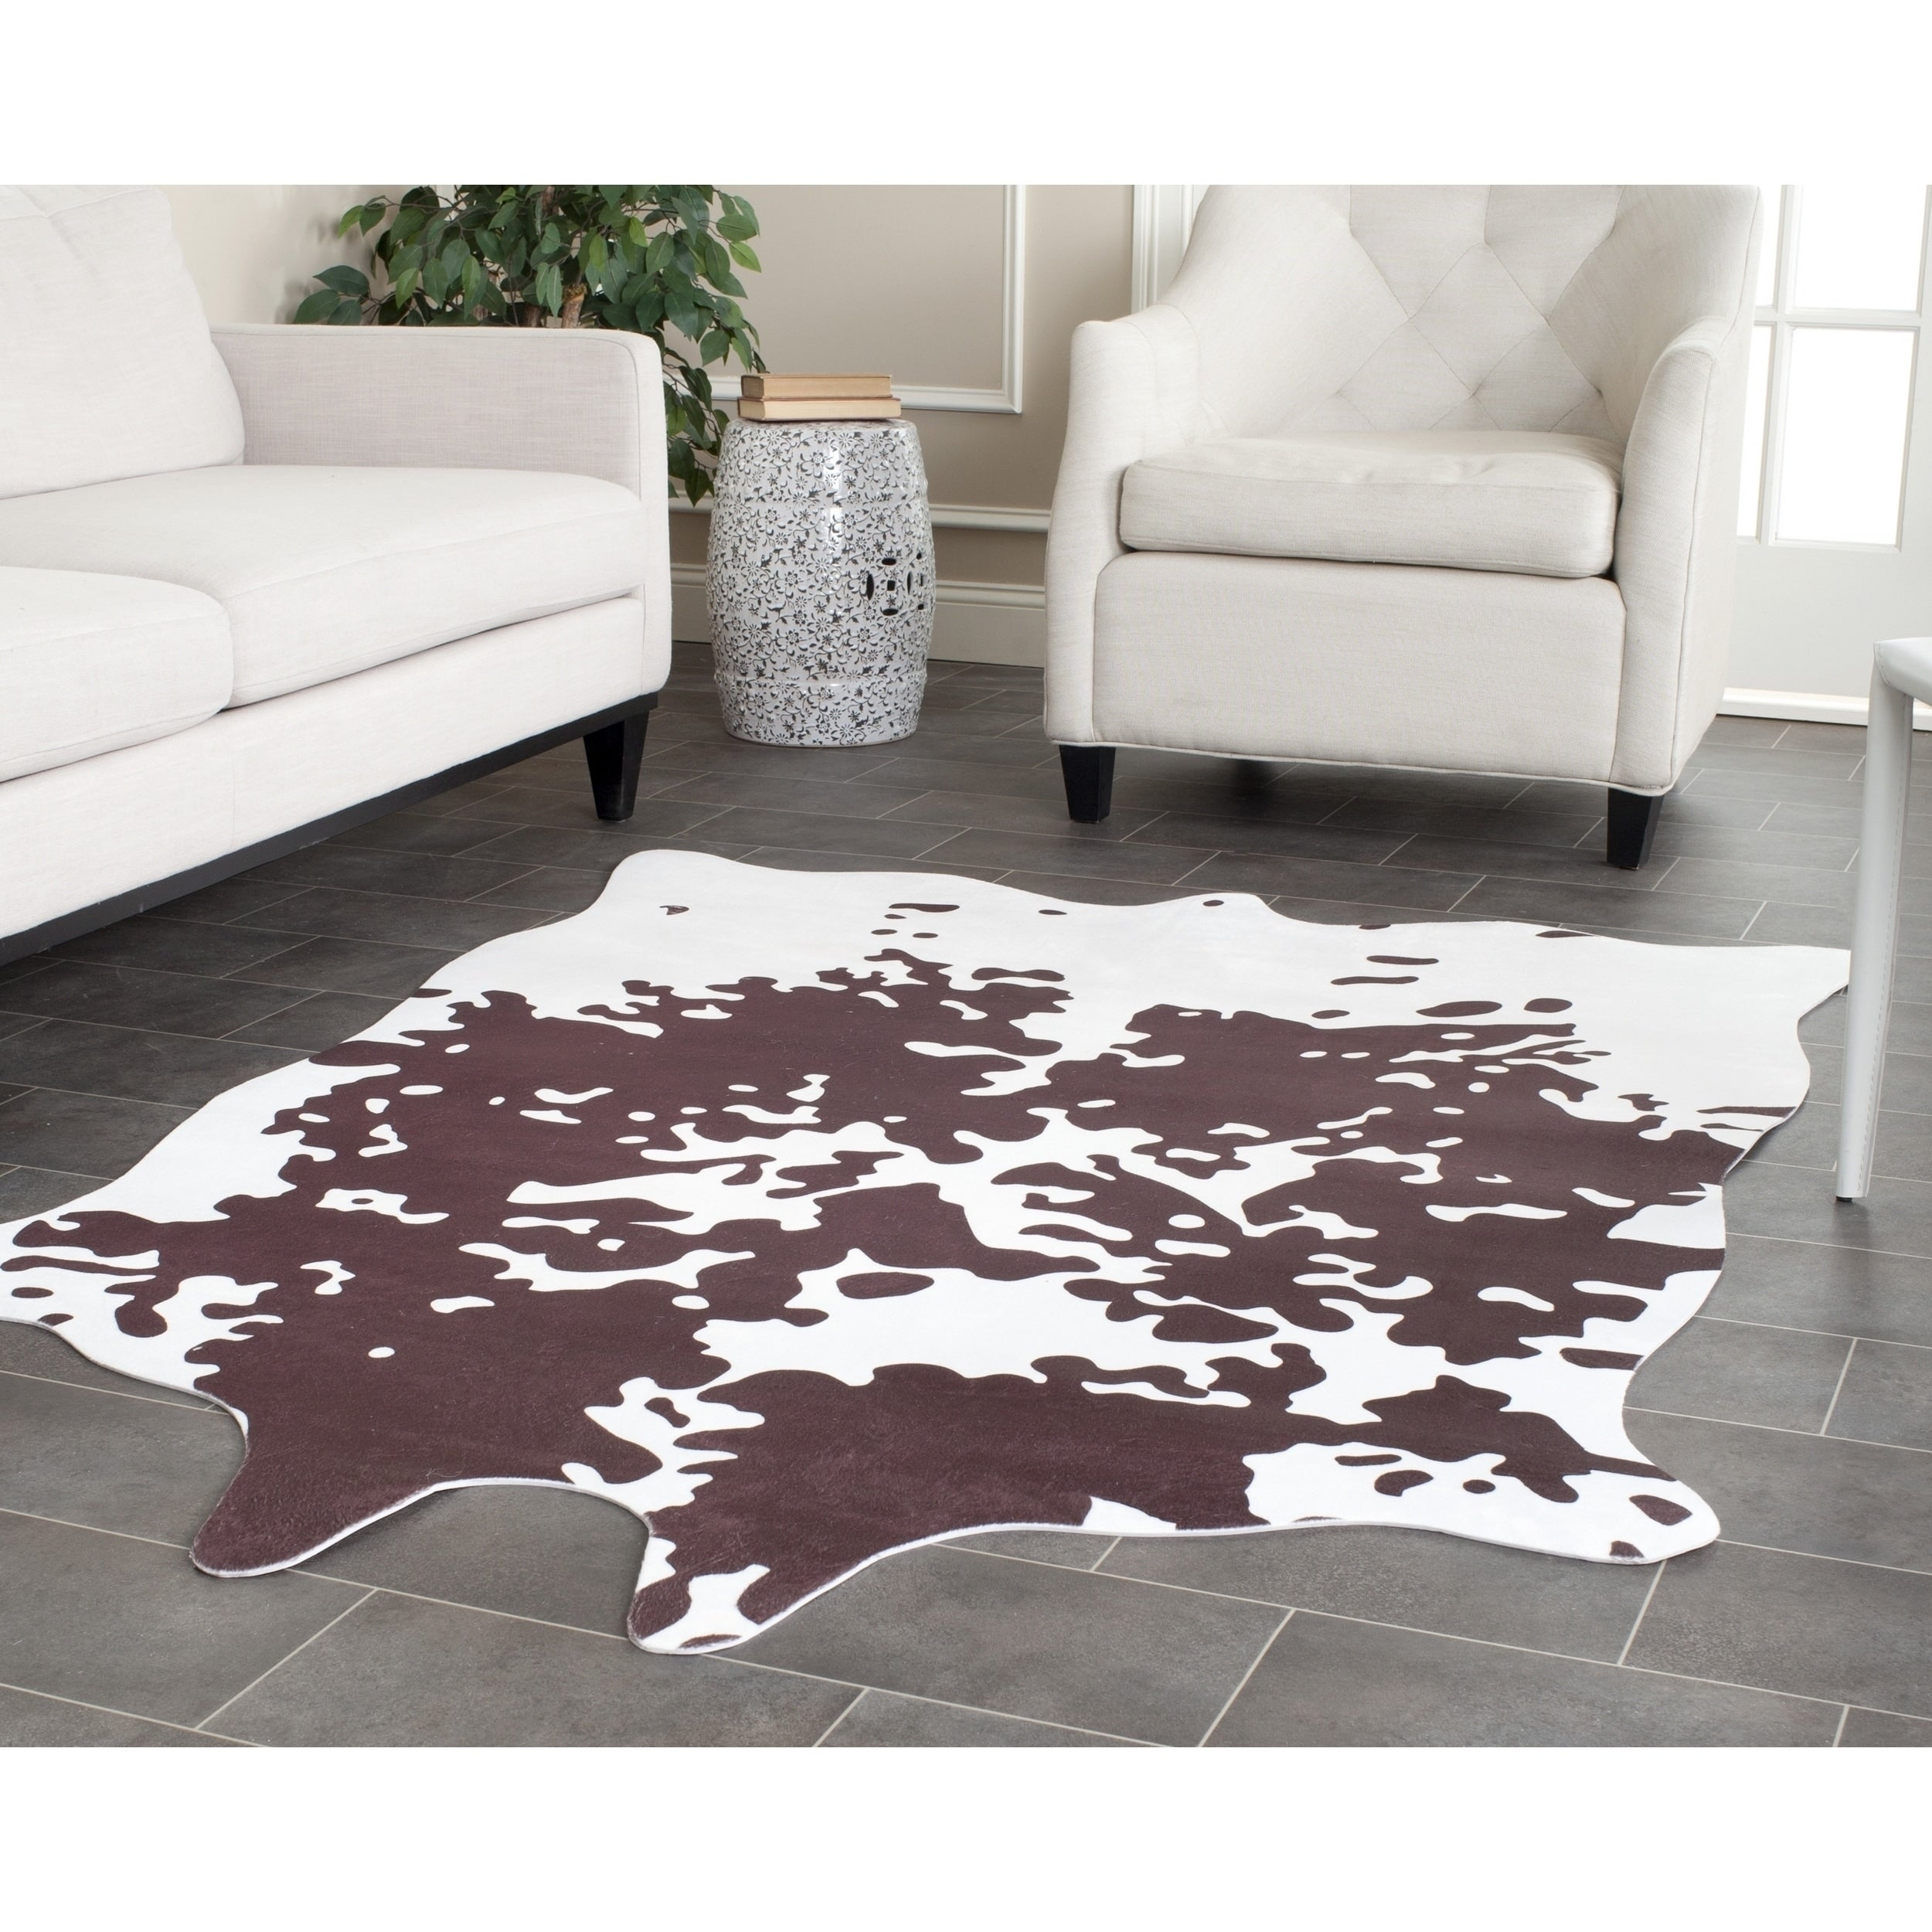 Safavieh Faux Cowhide Darci Rustic Polyester Rug